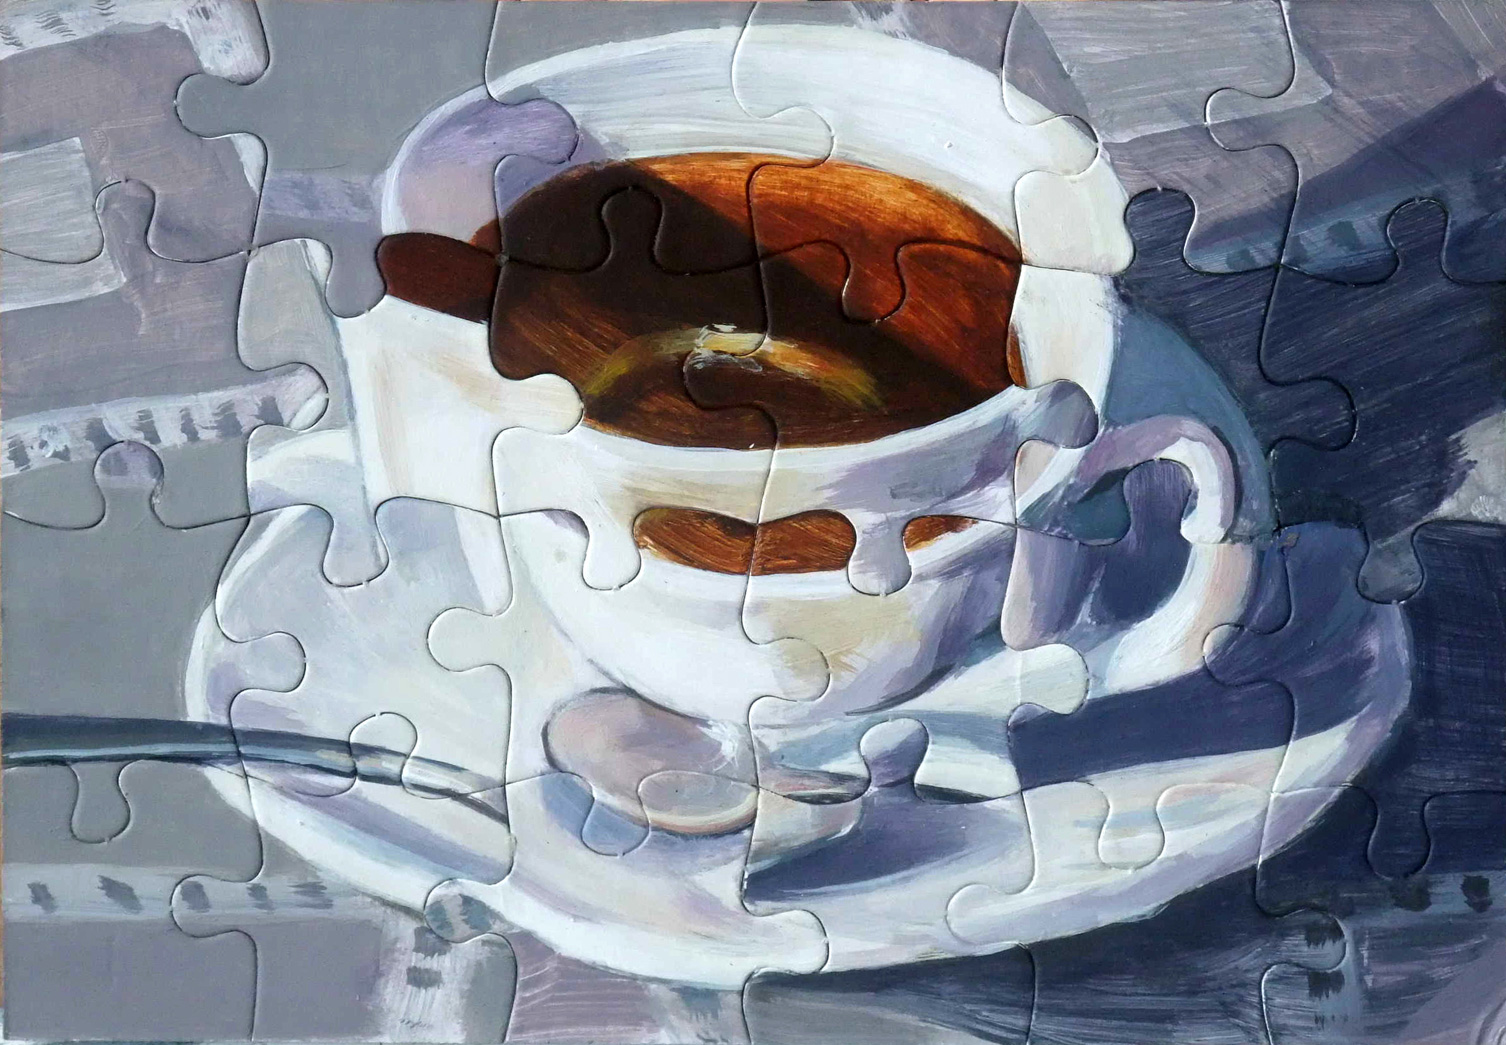 Teatime 4 by Darren Coffield